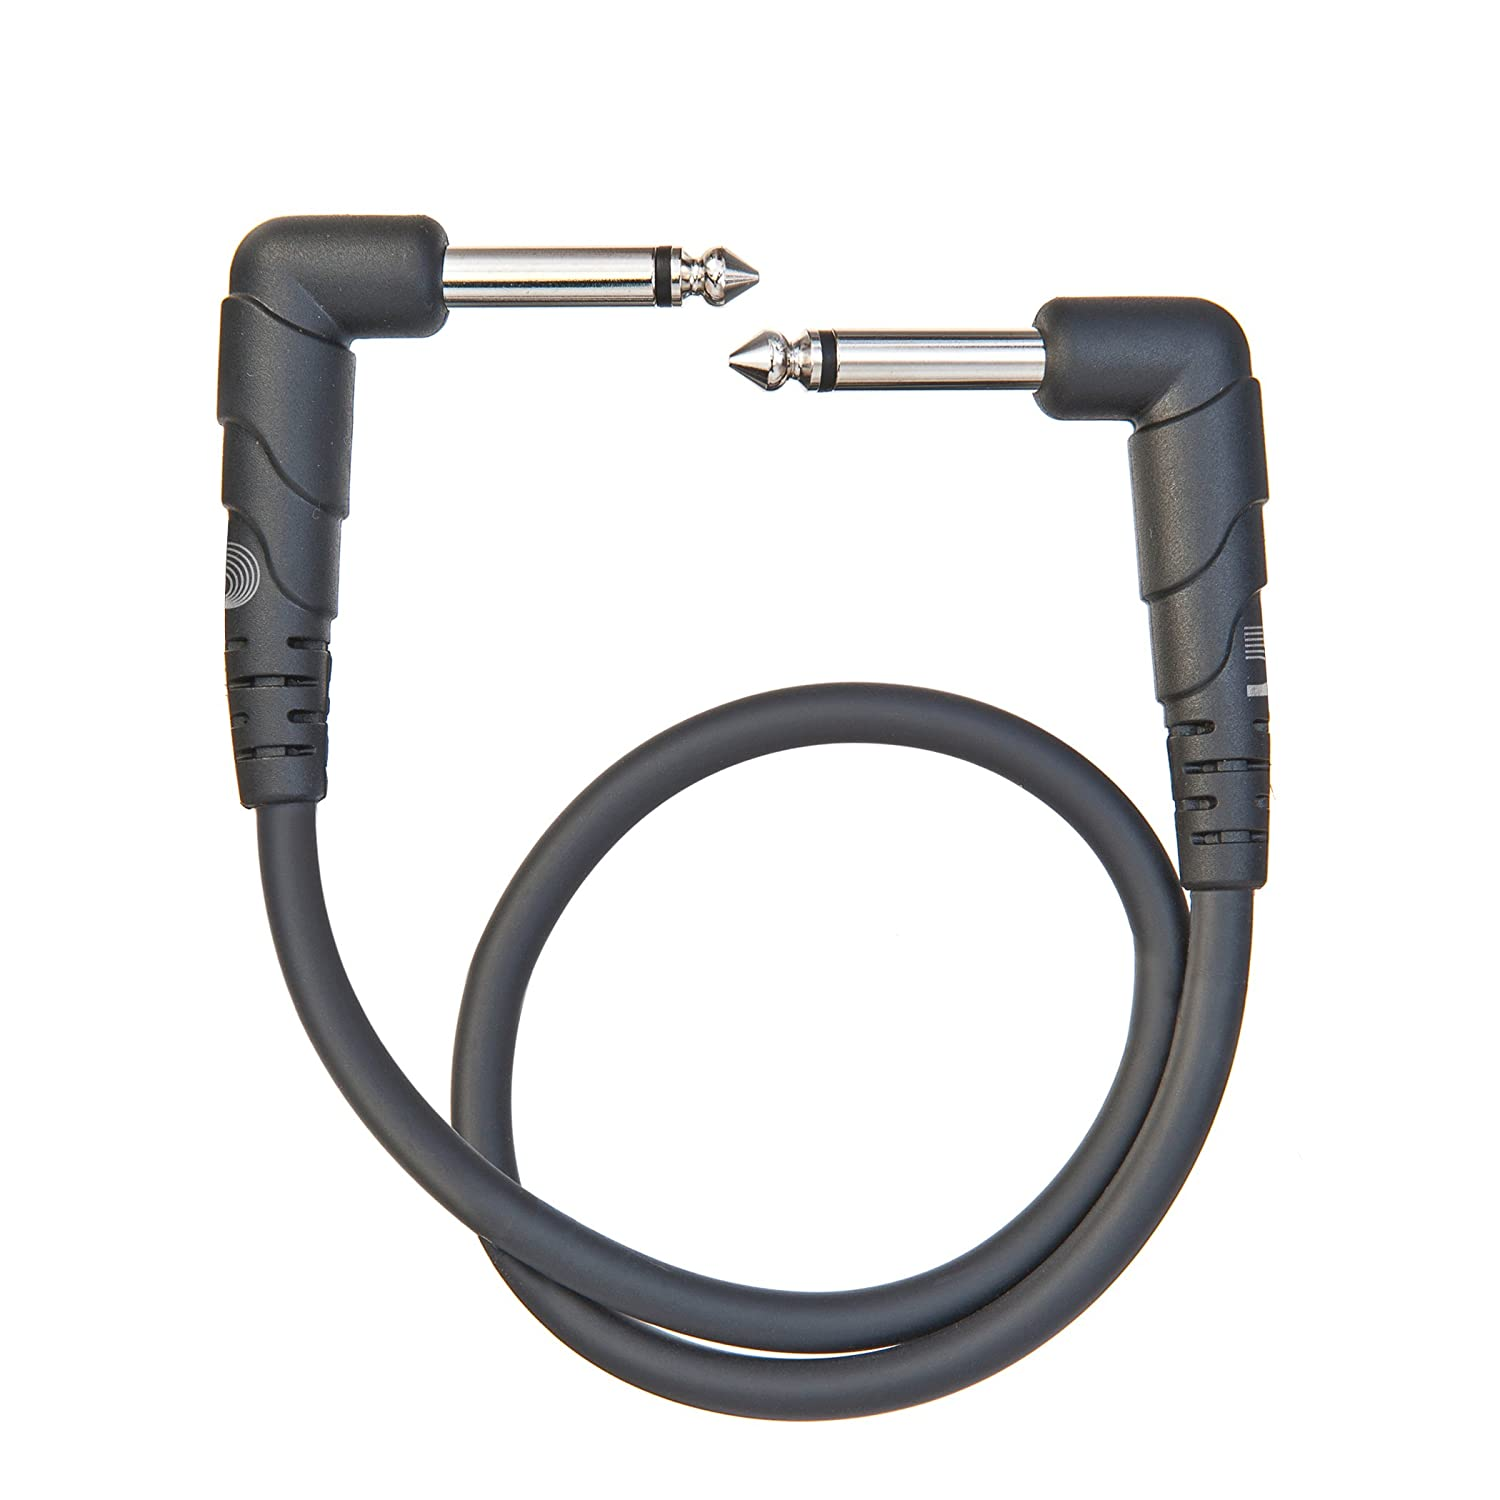 Planet Waves Classic Series Patch Cable, 1 Foot - PW-CGTP-01